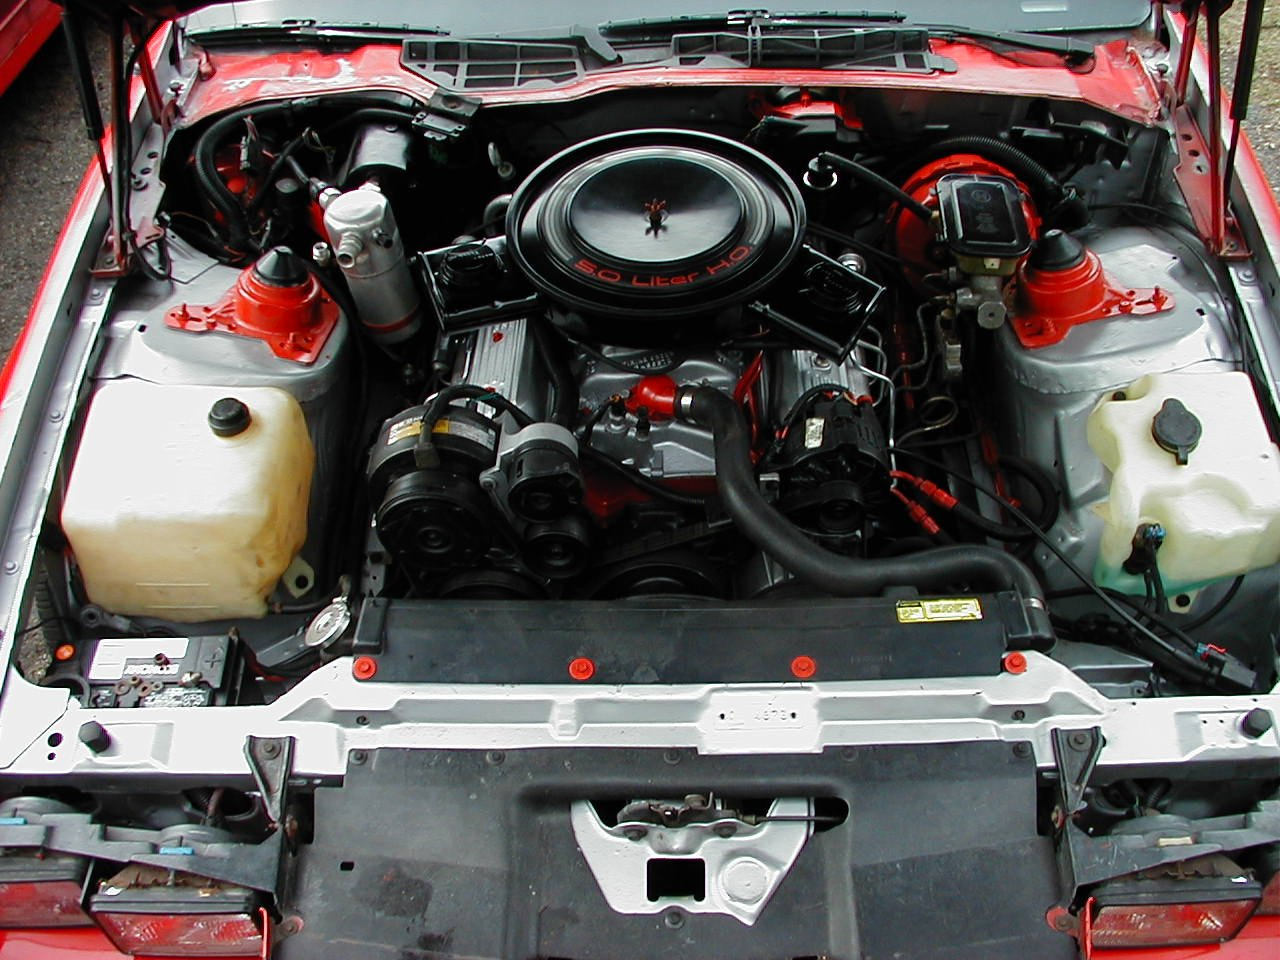 All Chevy 305 chevy engine for sale : 305 tbi heads - Third Generation F-Body Message Boards